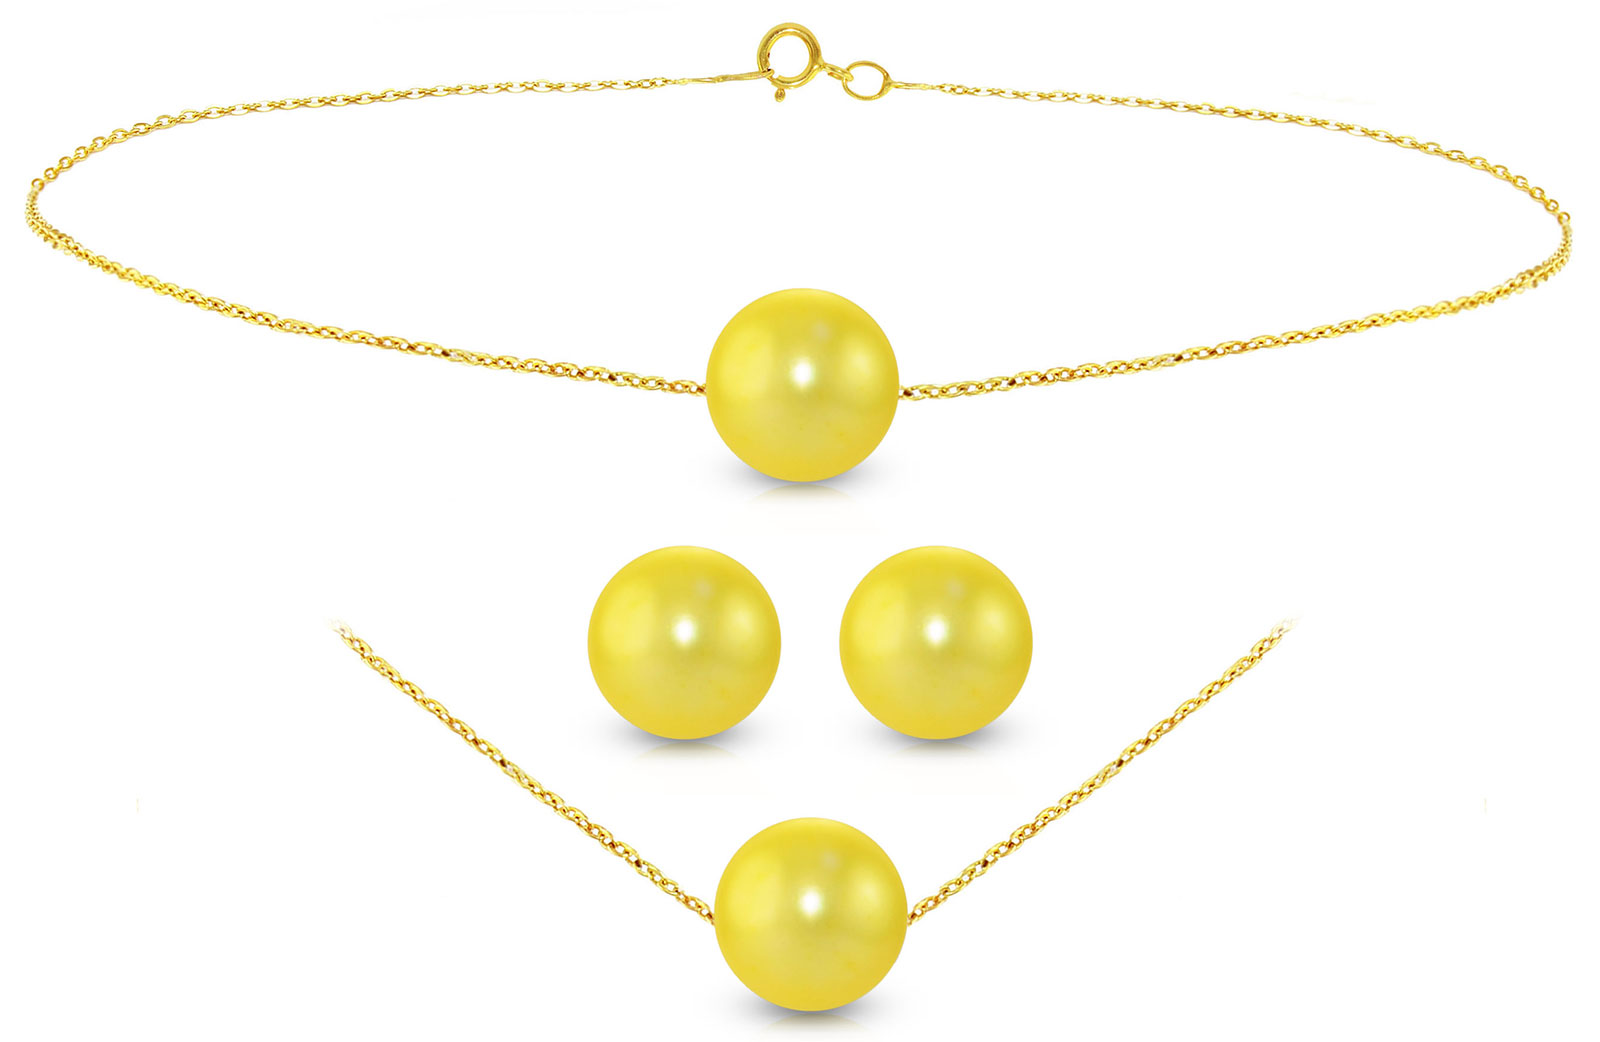 Vera Perla 18K Gold Simple 7mm Golden Pearl Jewelry Set, 3 Pieces